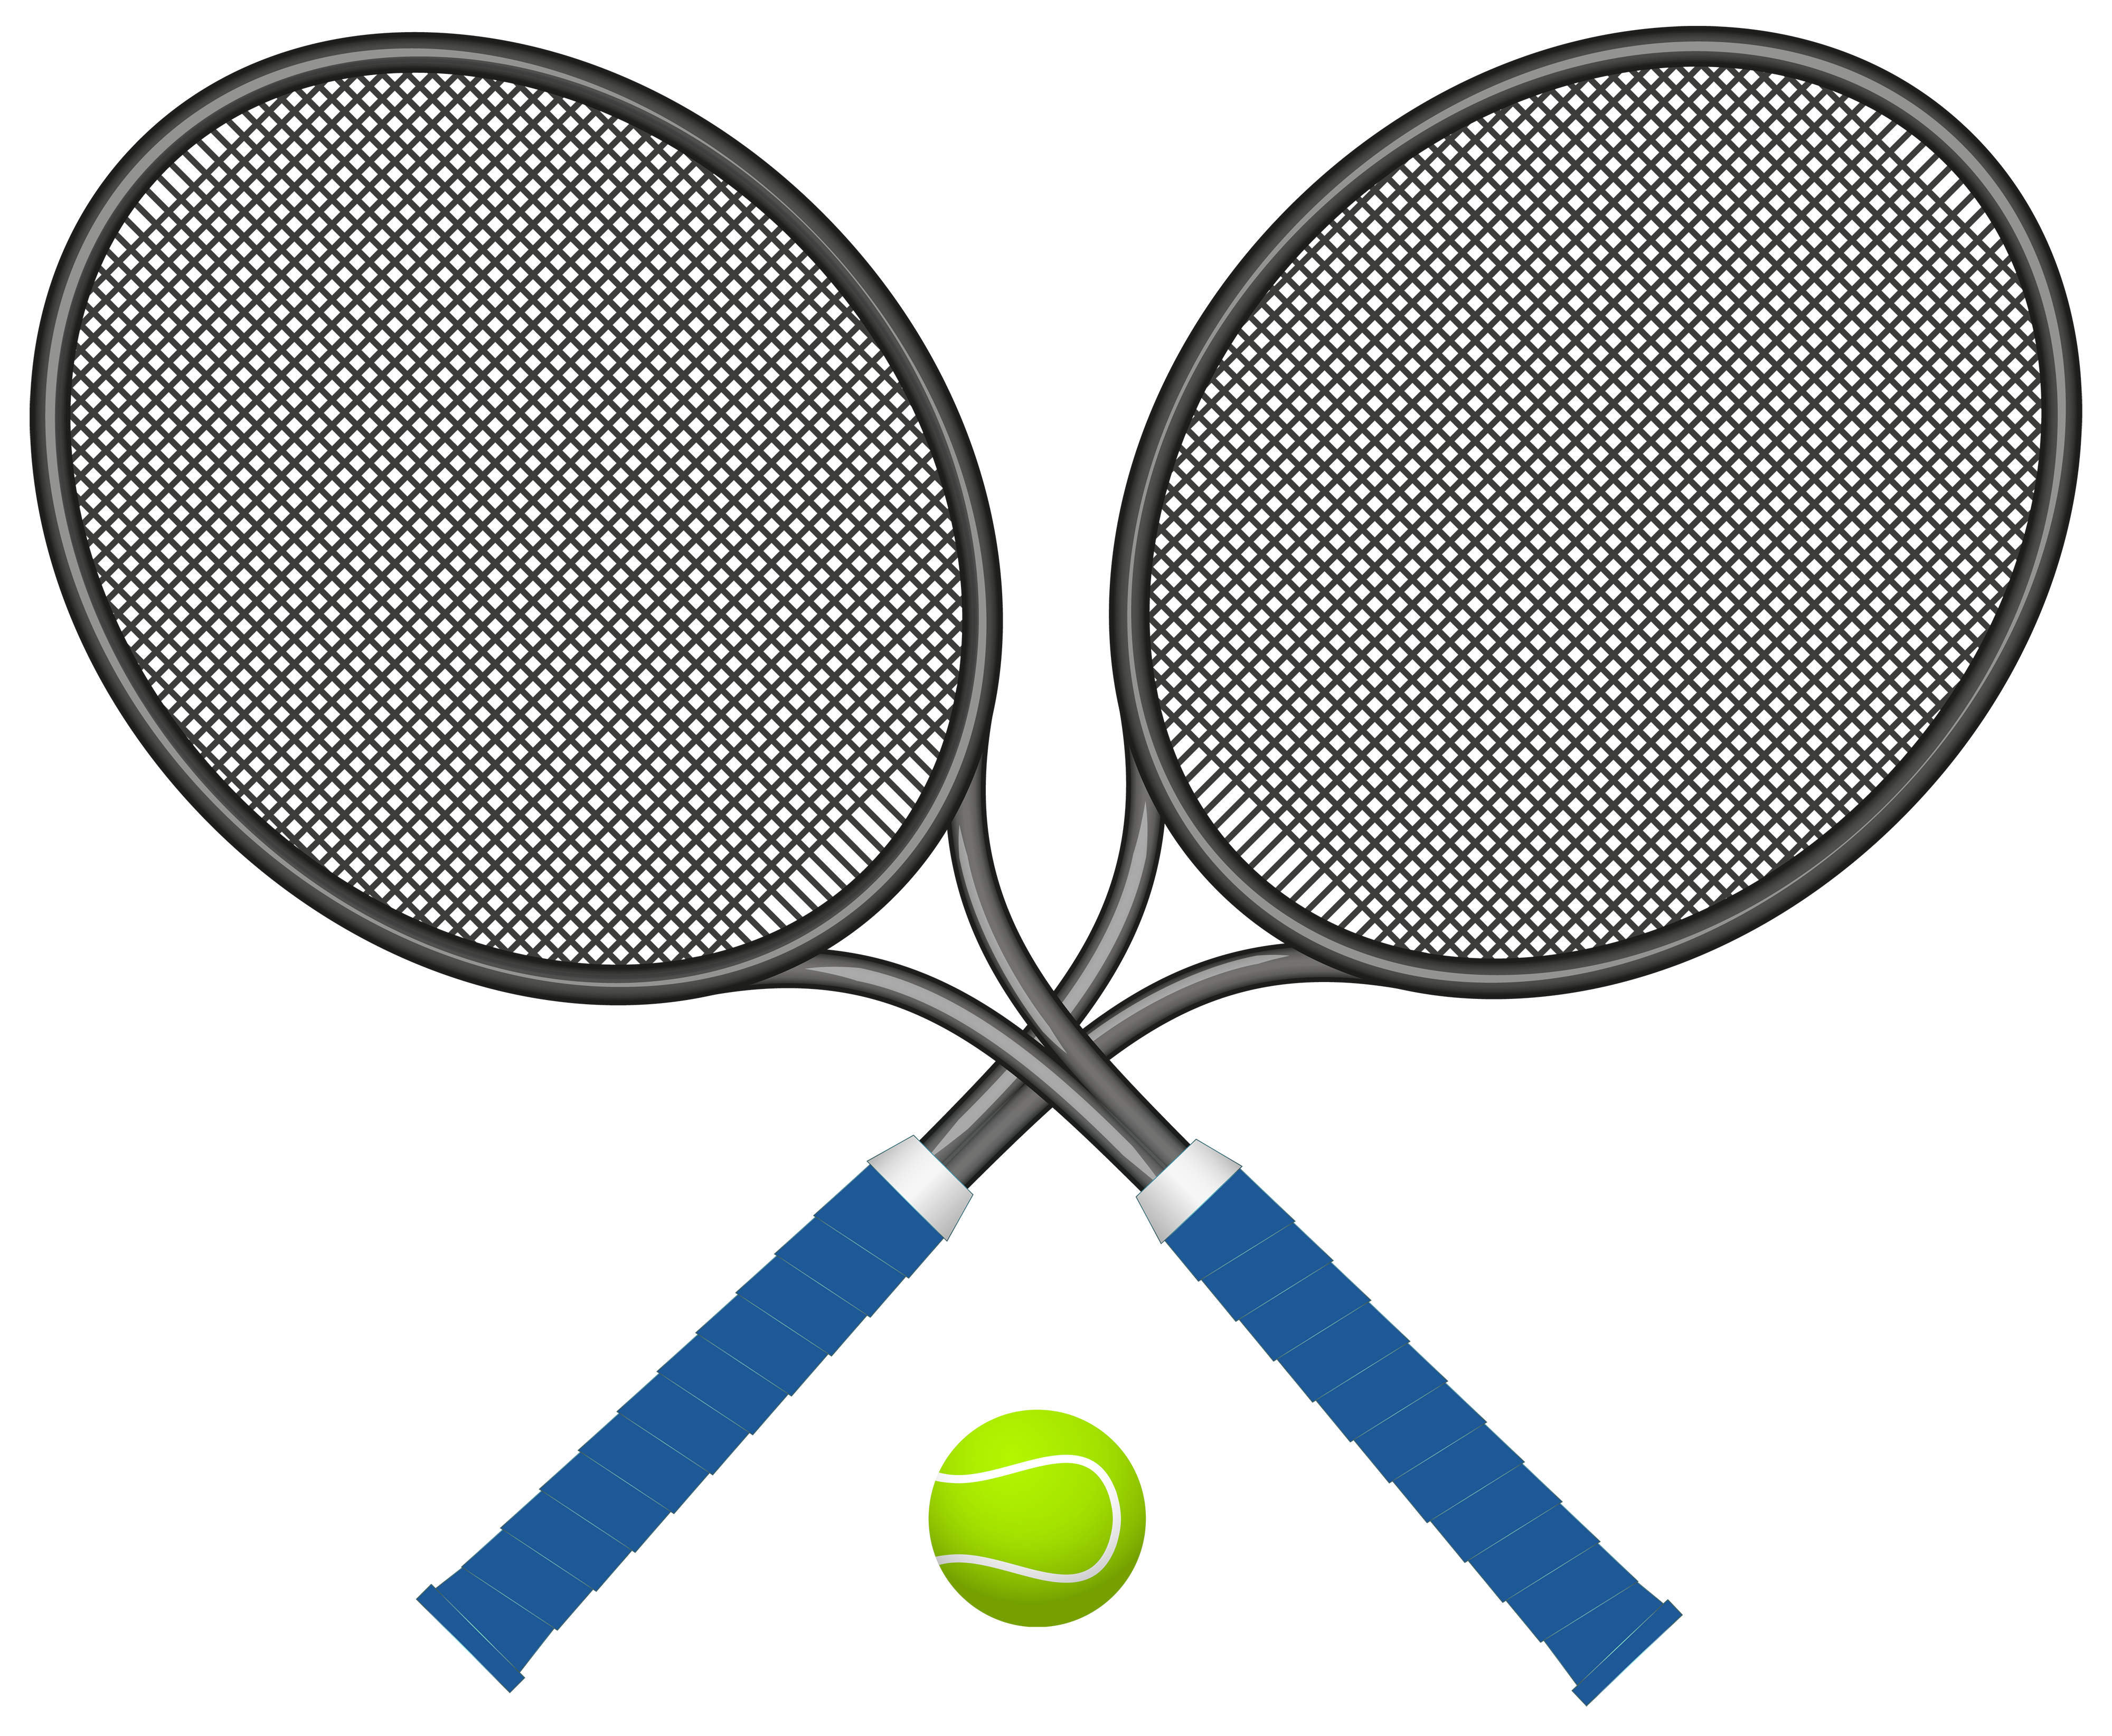 Rackets with ball png. Racket clipart pink tennis racket png download